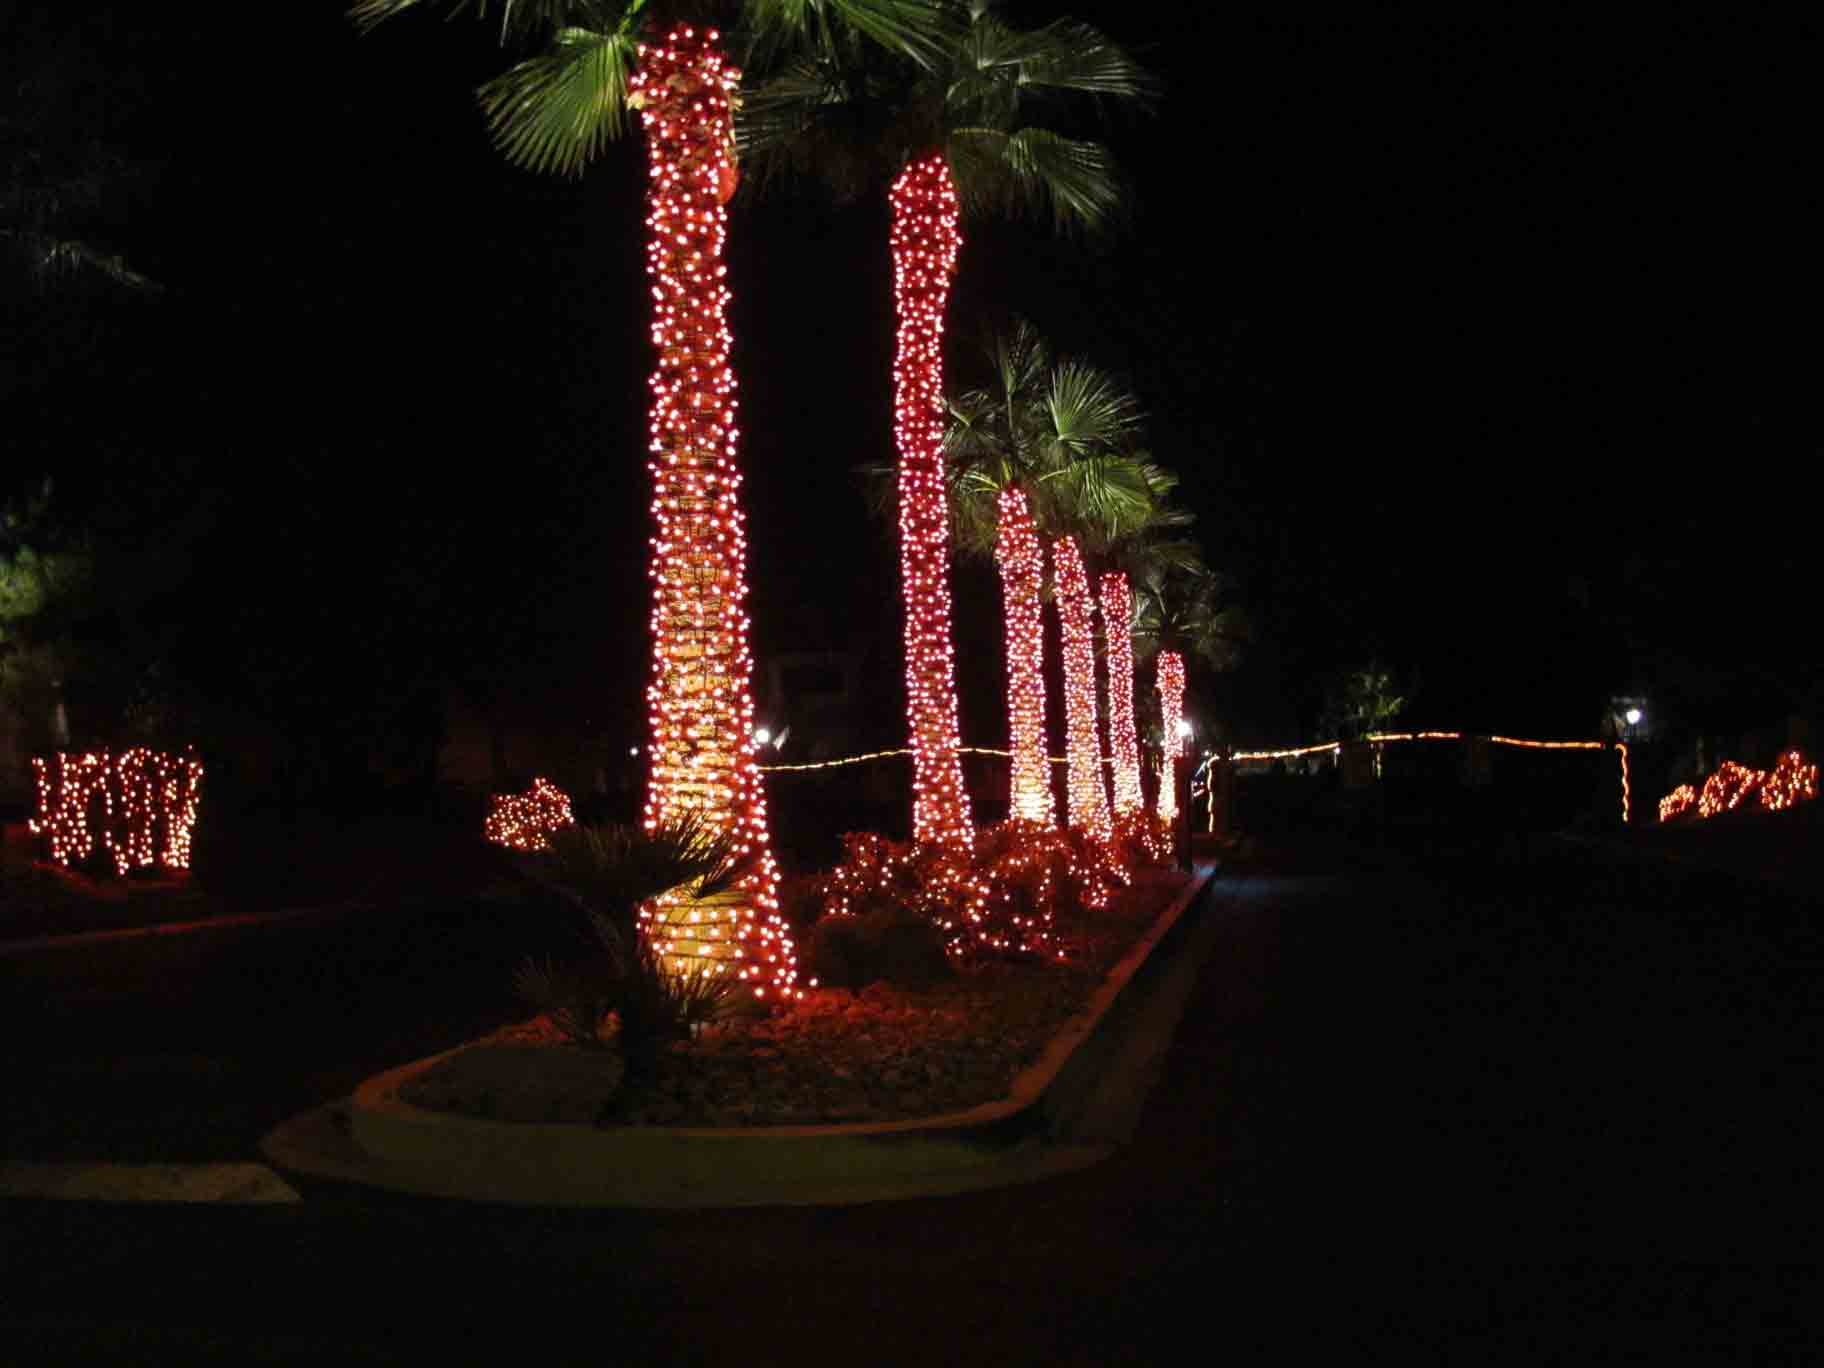 association halloween lighting rental service by holiday decorations in las vegas - Halloween Rental Decorations